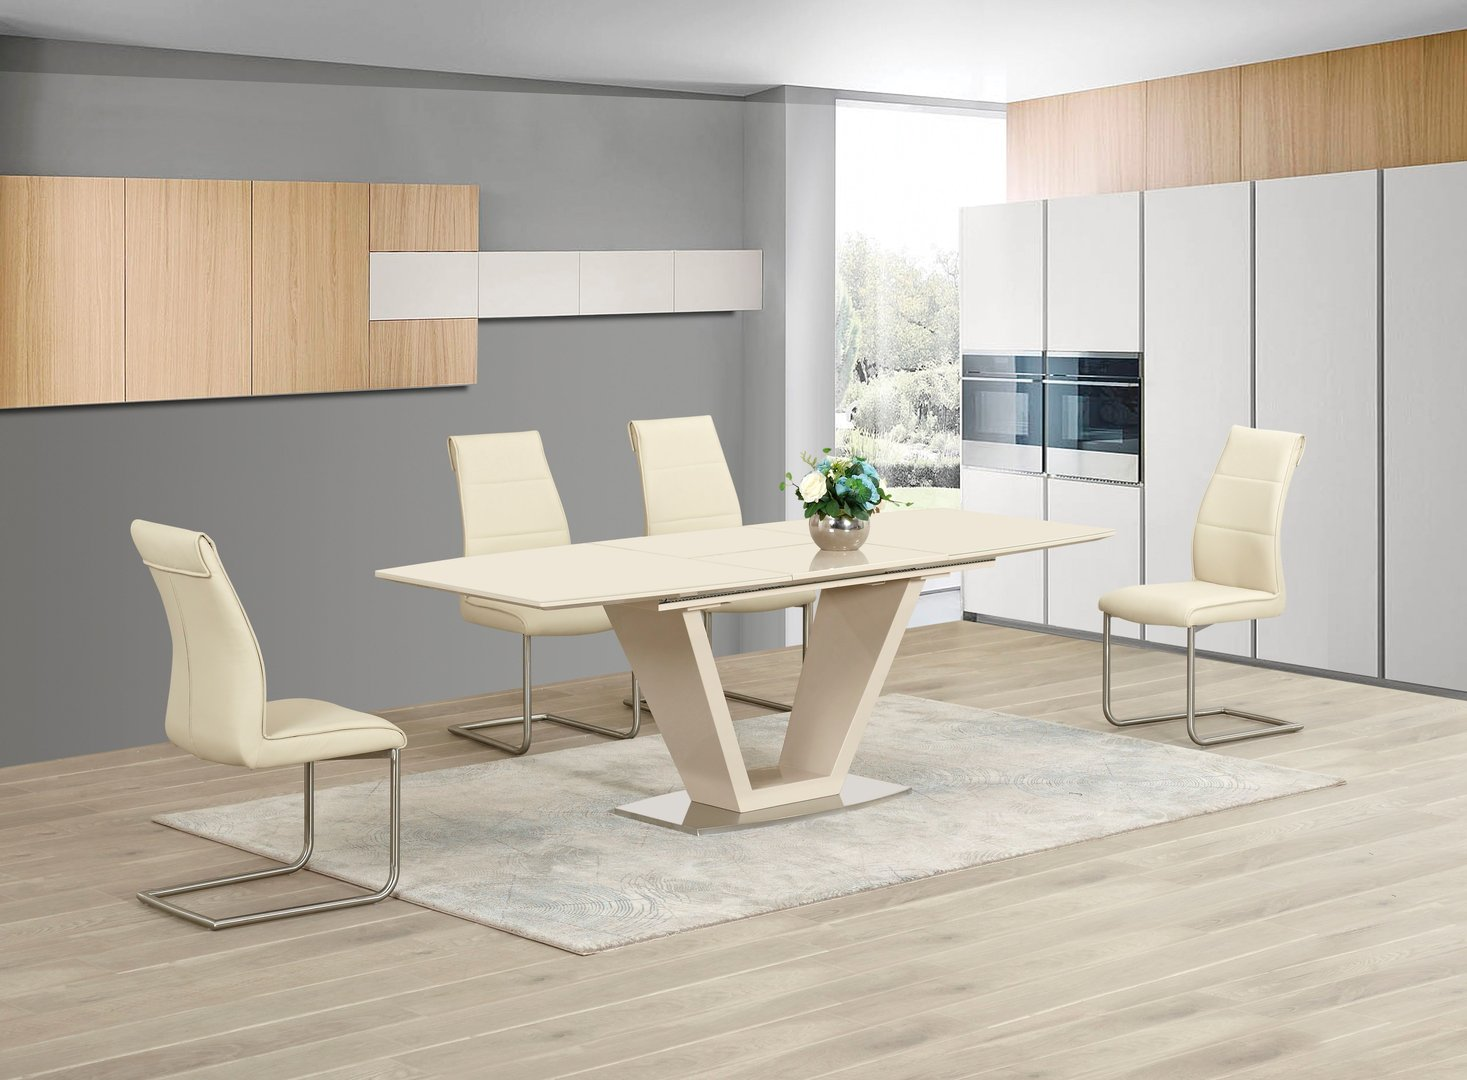 Extending Cream Glass High Gloss Dining Table Amp 6 Cream Chairs